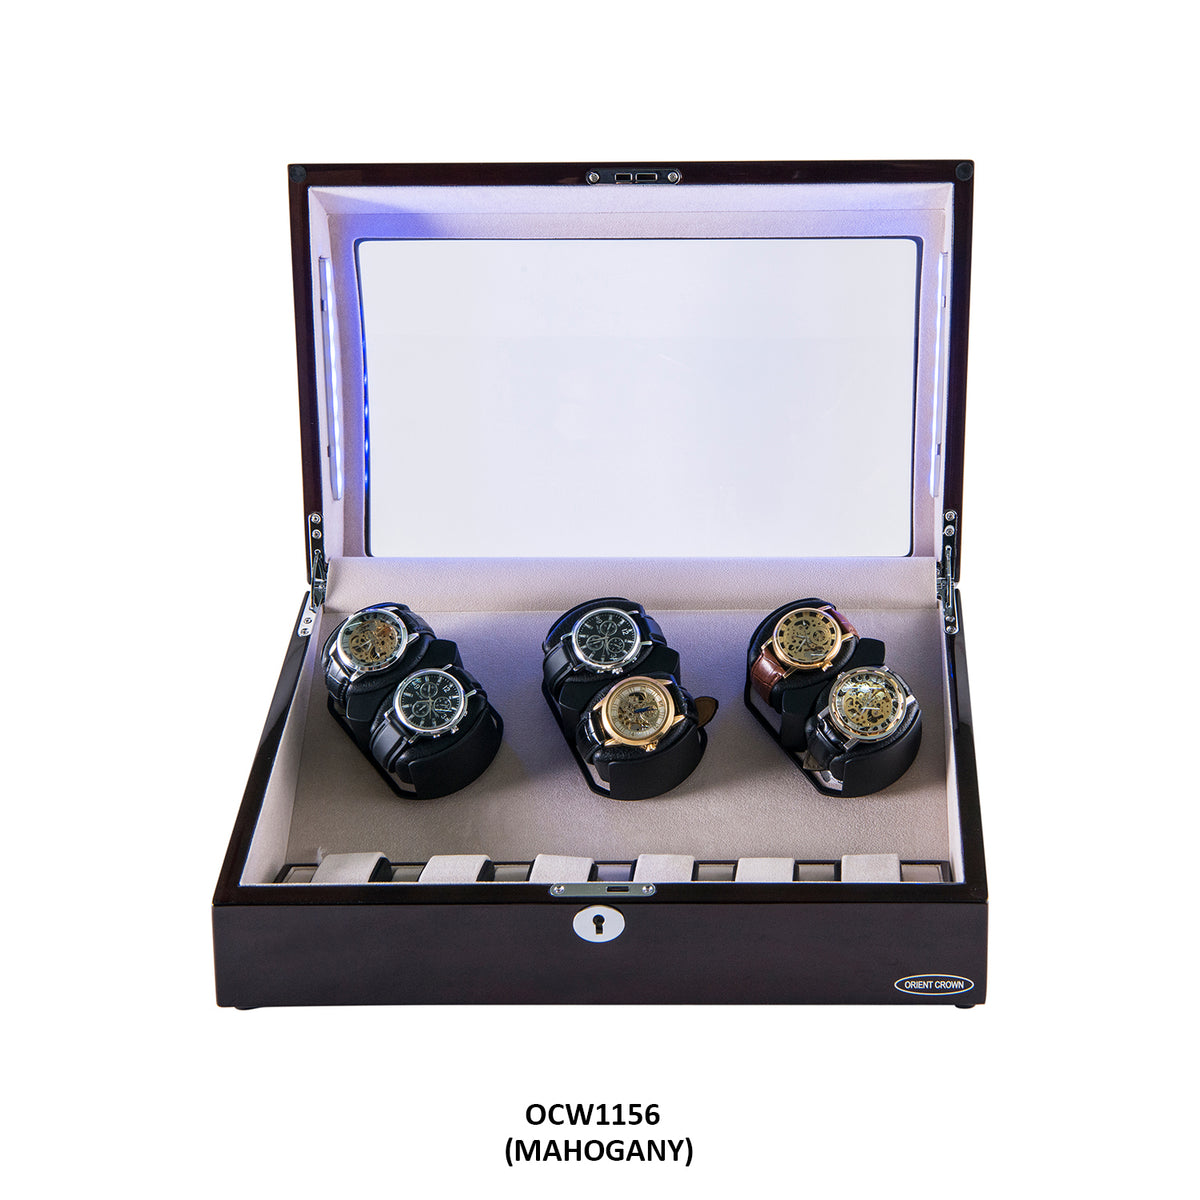 Watch Winder Model OCW1156